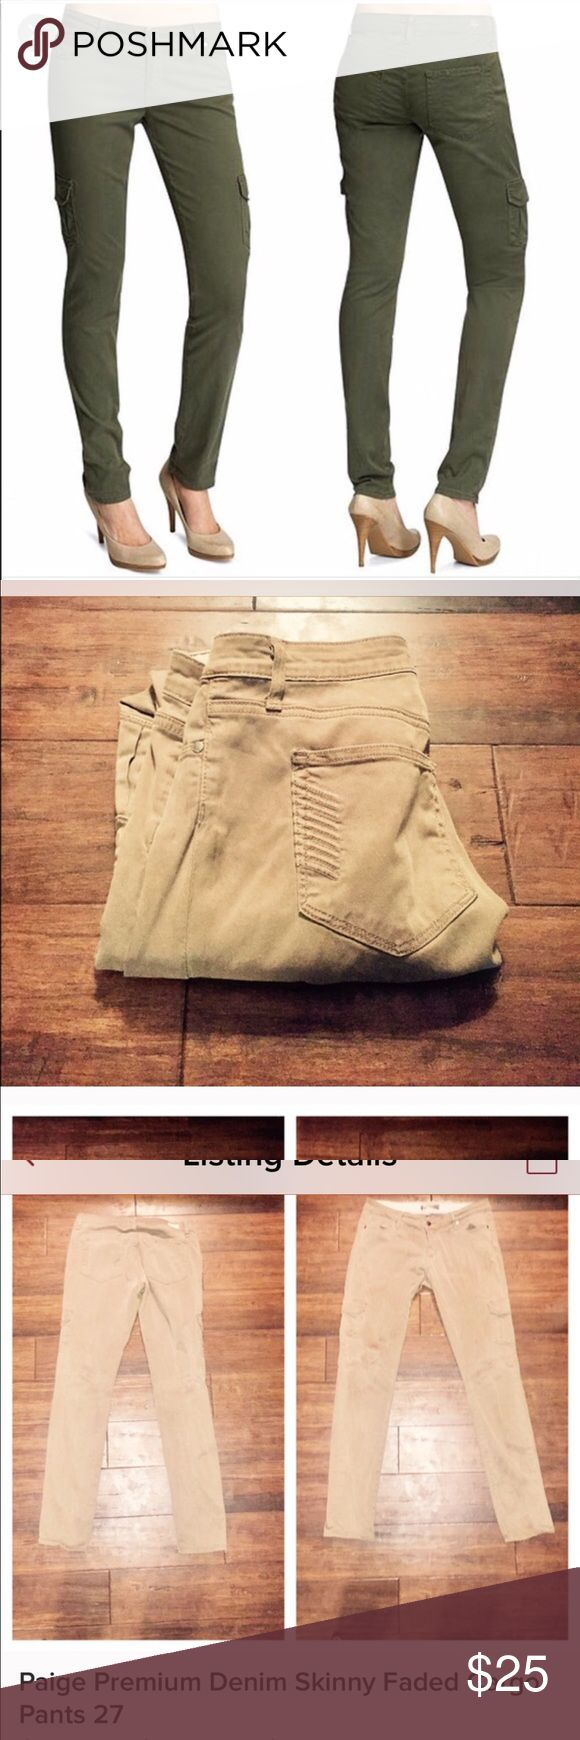 Paige premium denim cargo skinny pants 27 Paige olive green/khaki skinny cut but not tight like leggings. Super soft and comfortable. See the second picture for actual pants and color. First photo is to show style as they are too big for me. Paige Jeans Jeans Skinny